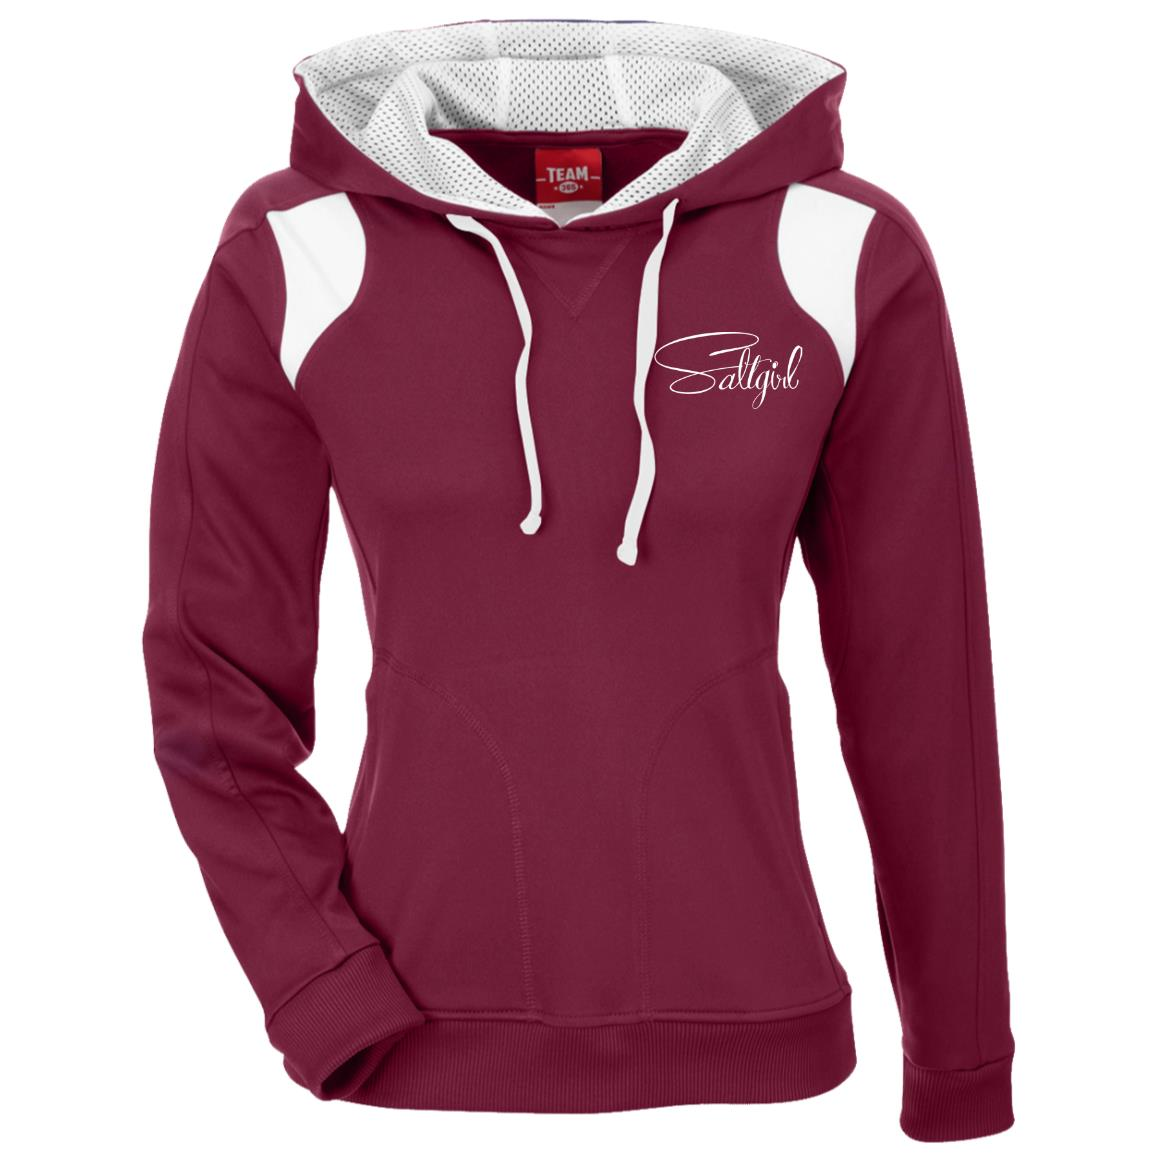 TT30W Team 365 Ladies' Colorblock Poly Hoodie - Saltgirl Clothing - Women's Saltwater Fishing Apparel and Swimwear